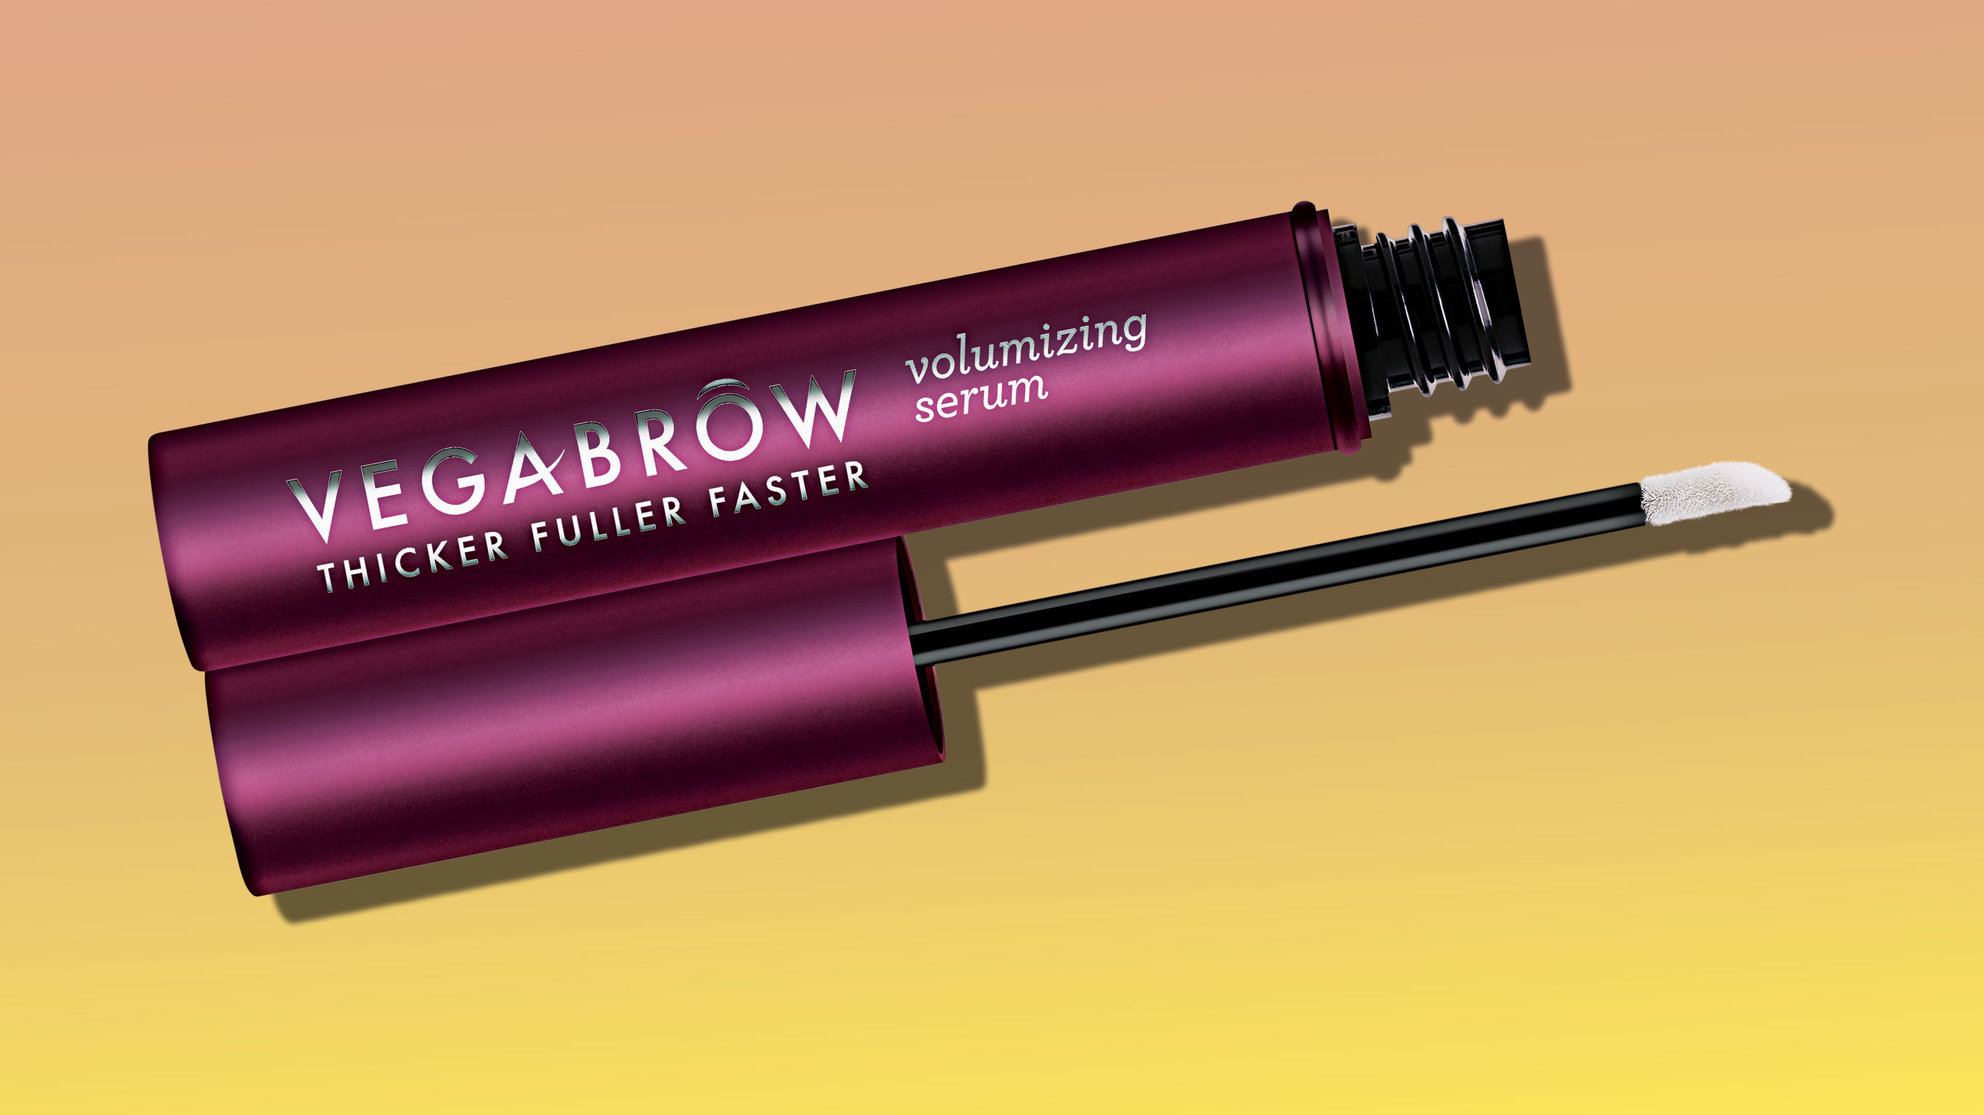 The Best Eyebrow Growth Serums, According to Dermatologists